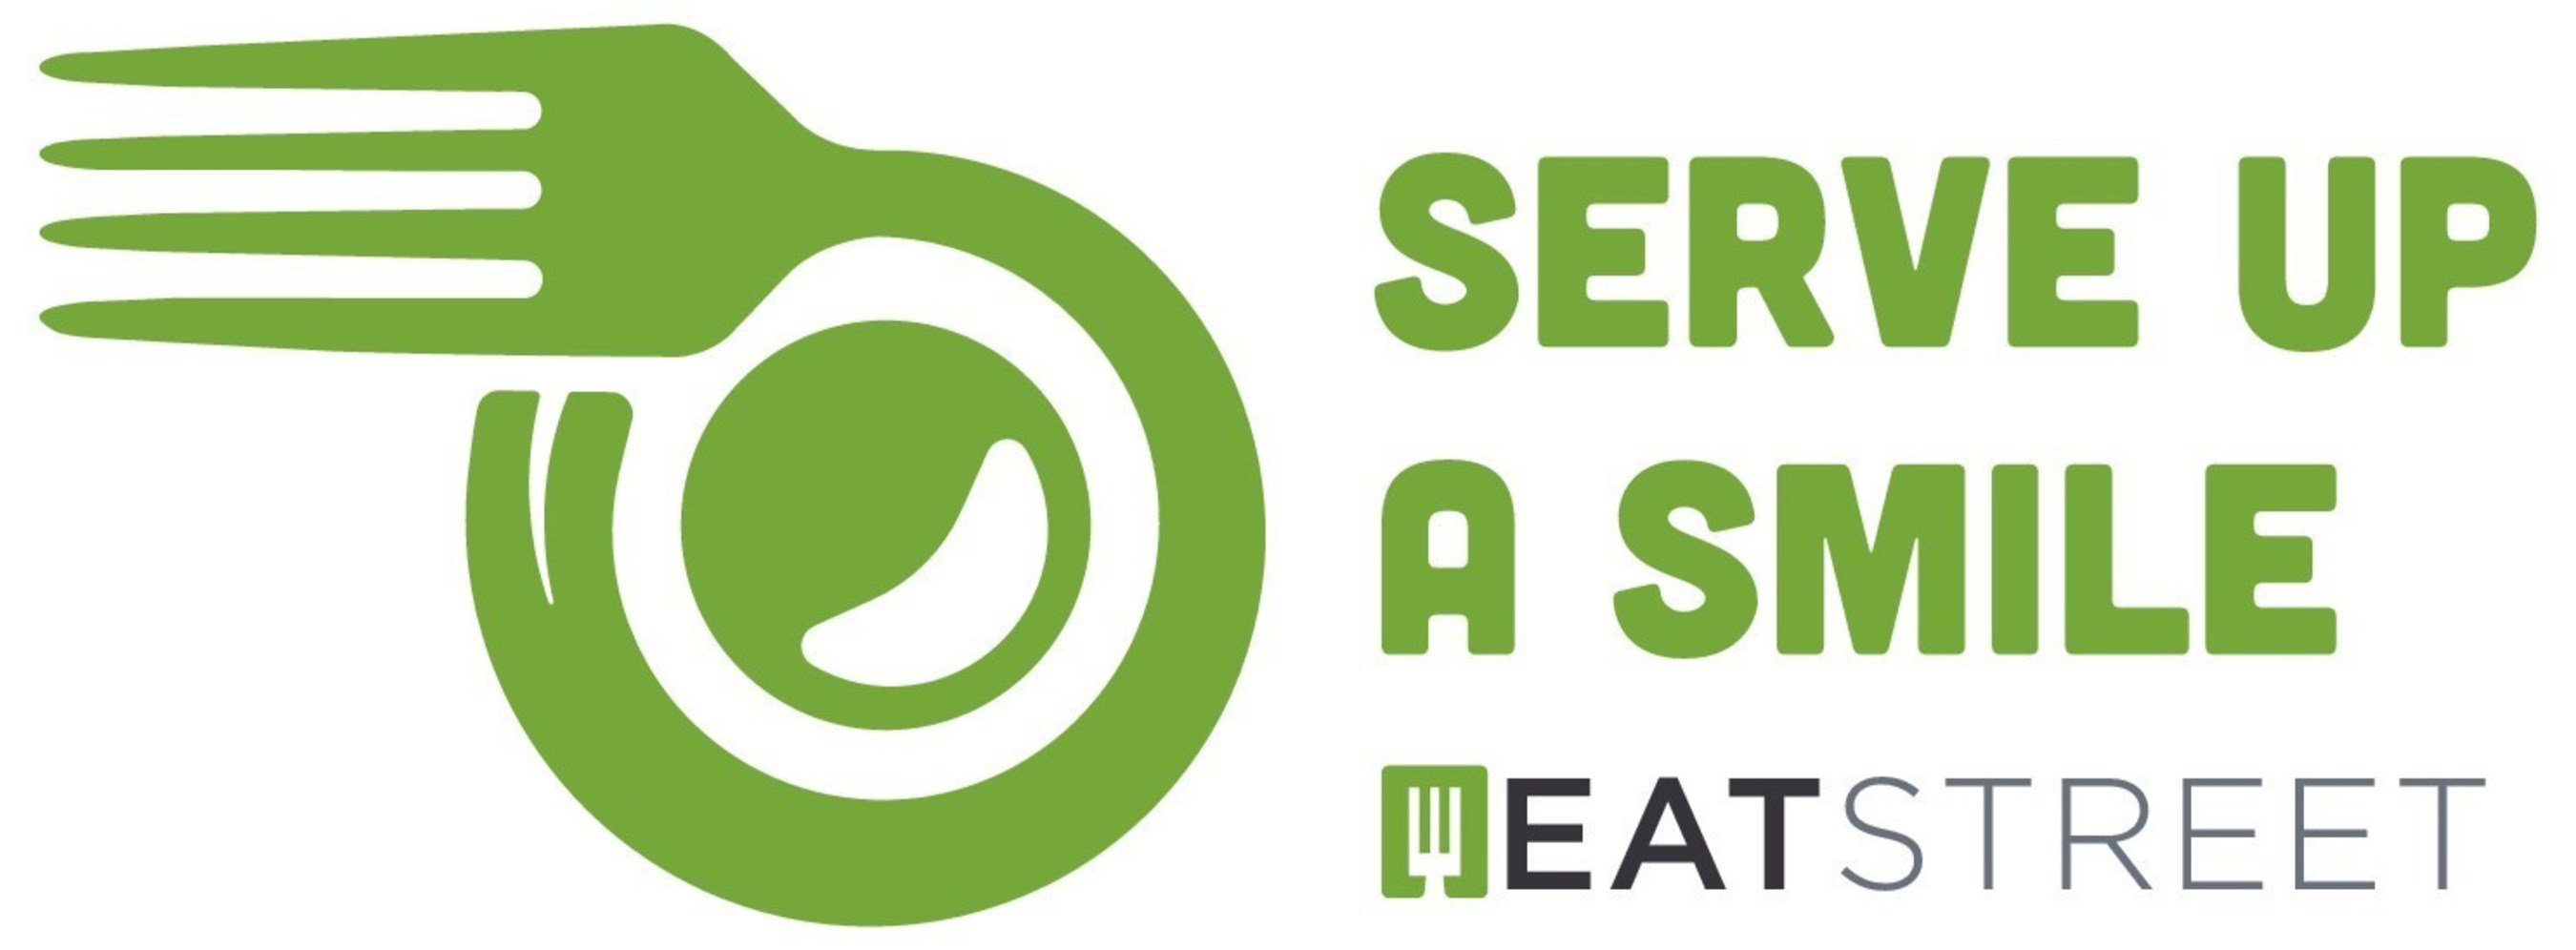 """Together EatStreet and Meals On Wheels Association of America will help communities across America fight senior isolation and hunger with their """"Serve Up A Smile"""" program."""